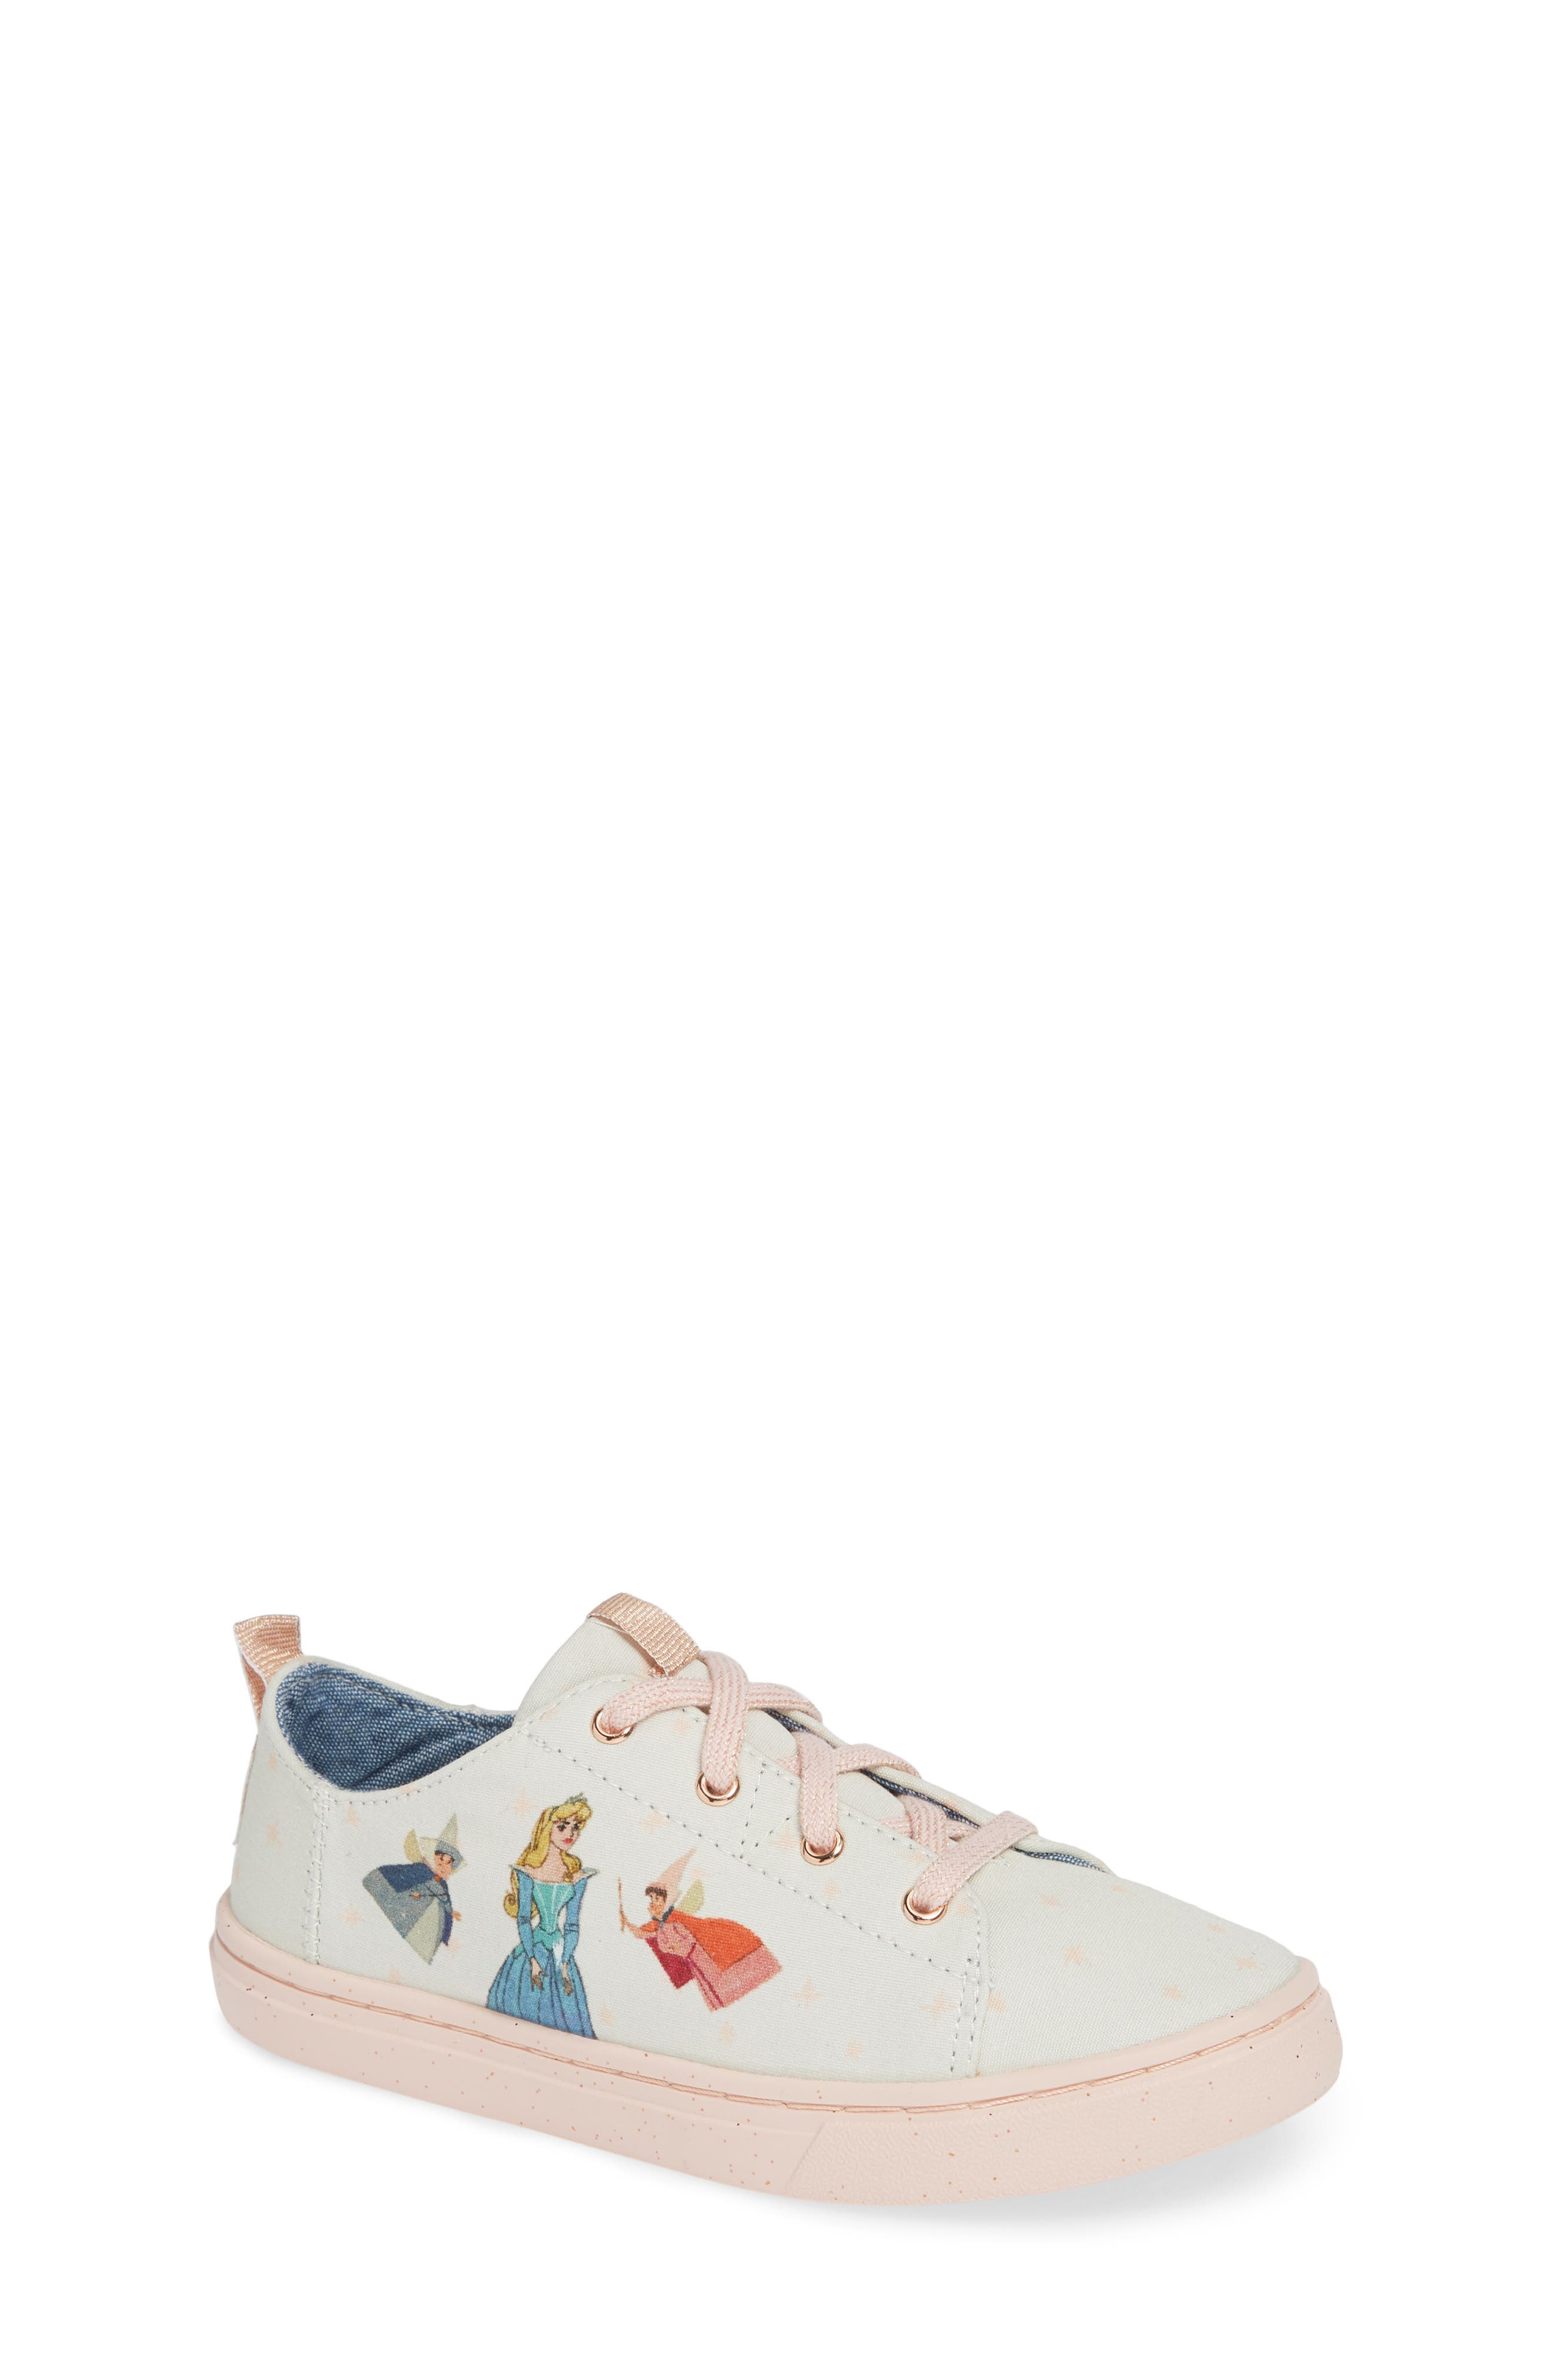 x Disney Lenny Low Top Sneaker,                         Main,                         color, FAIRY GODMOTHER